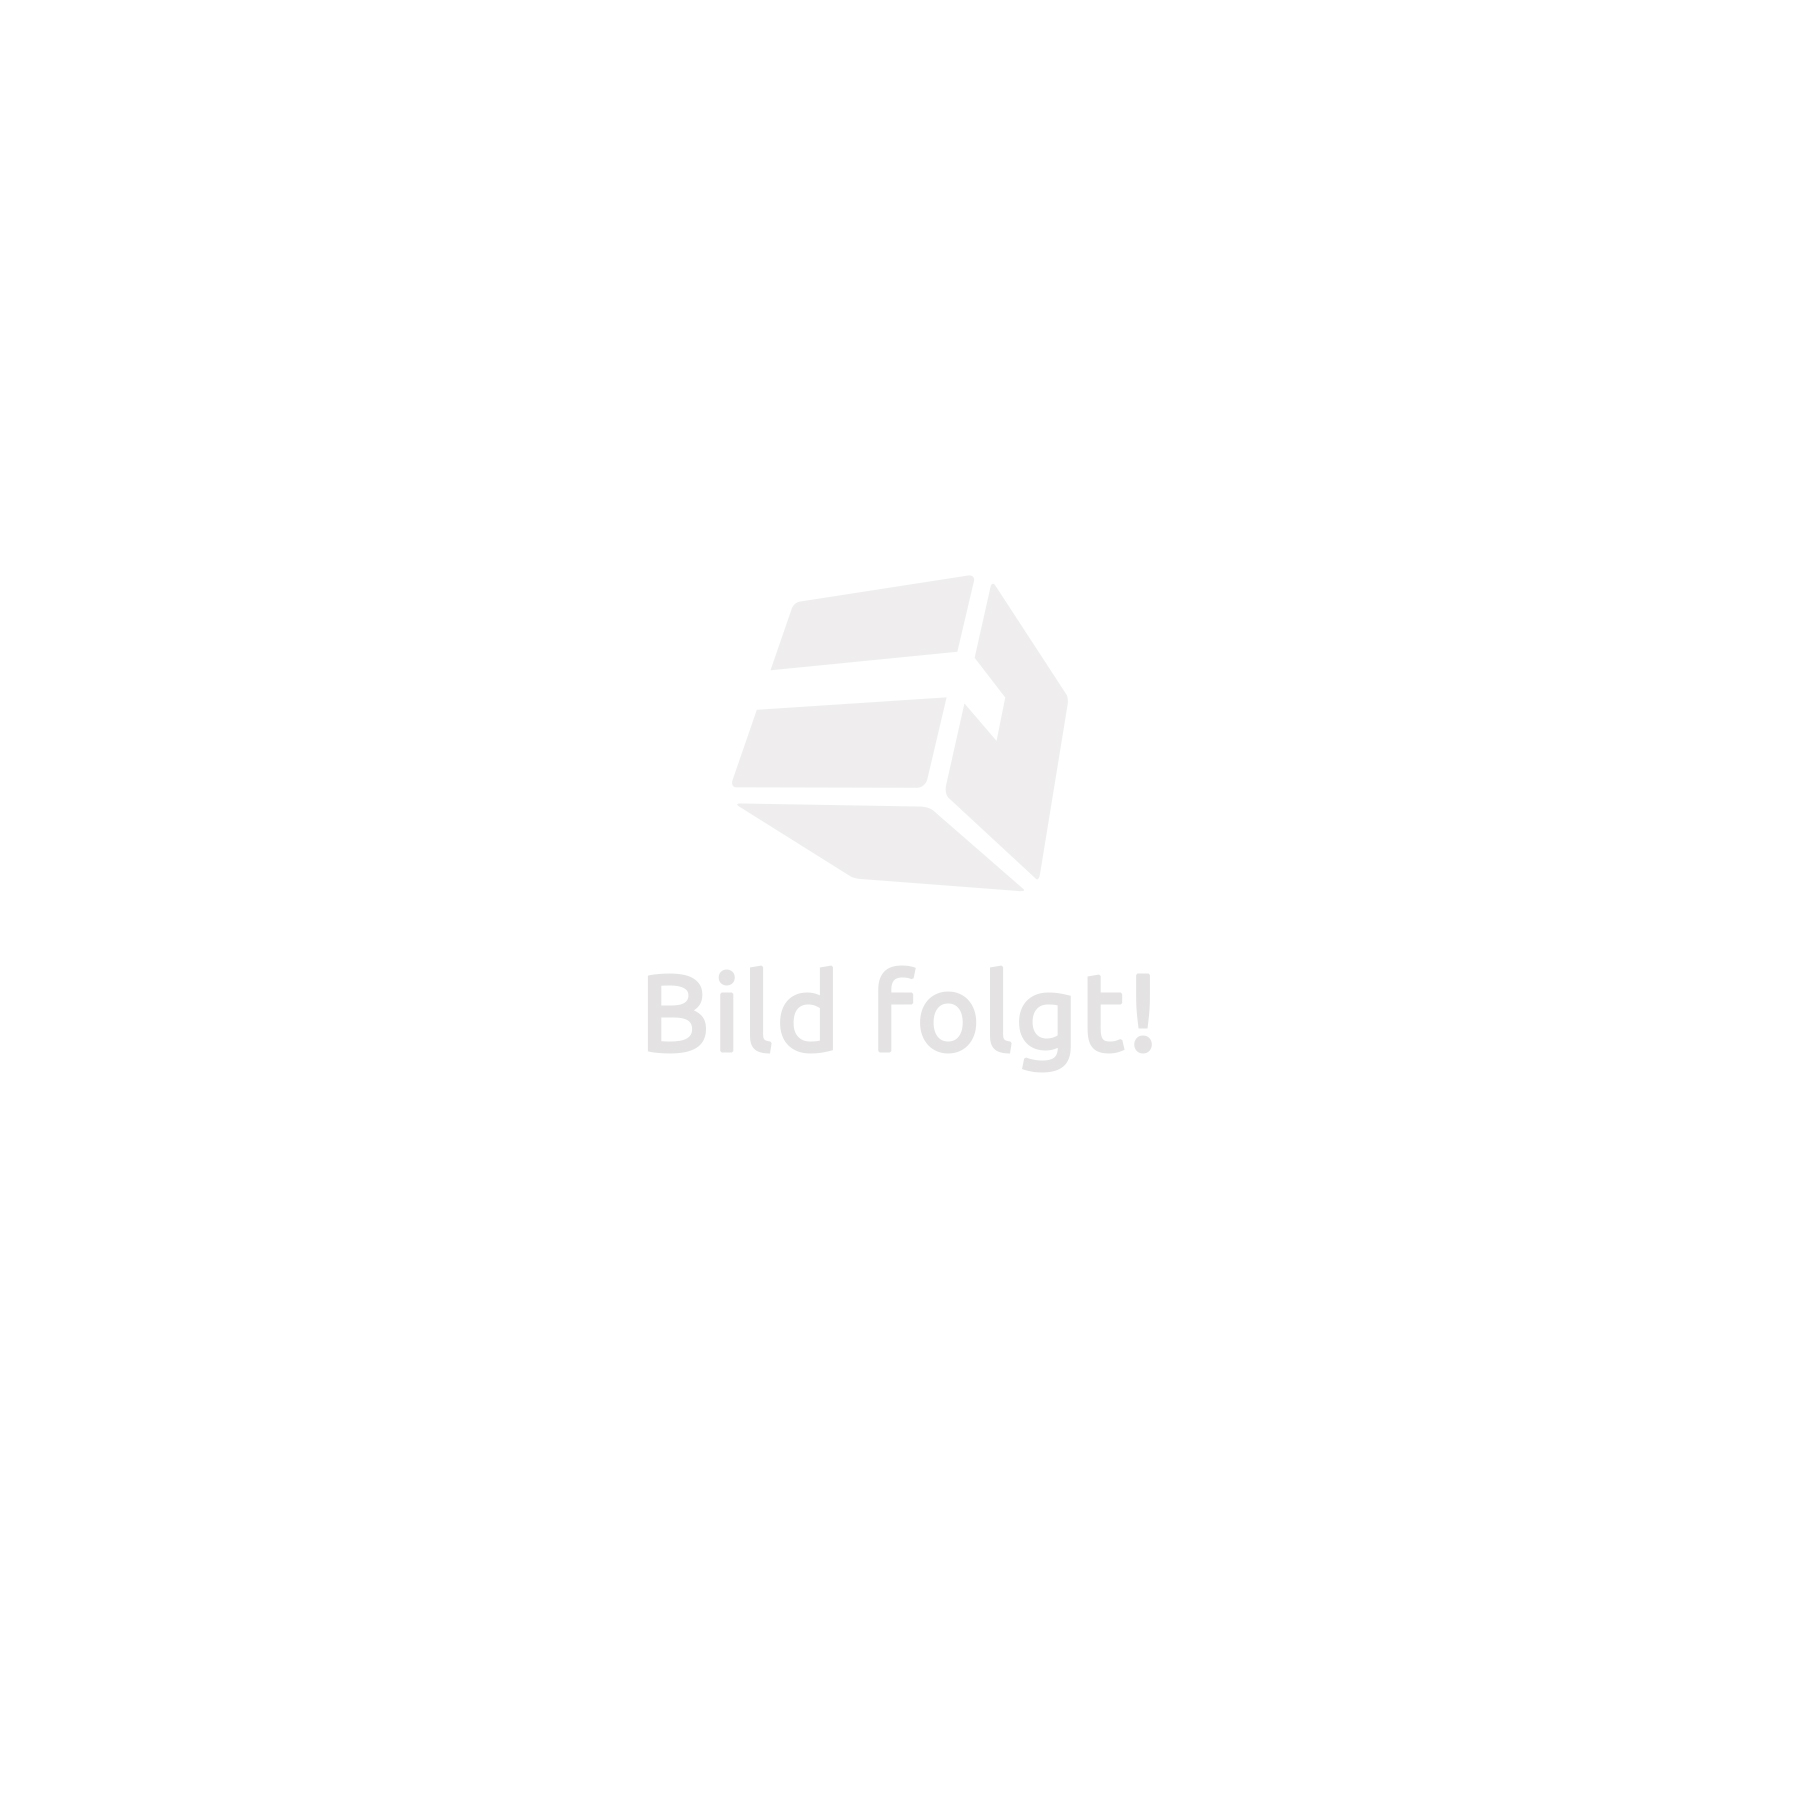 wicker barset. Black Bedroom Furniture Sets. Home Design Ideas